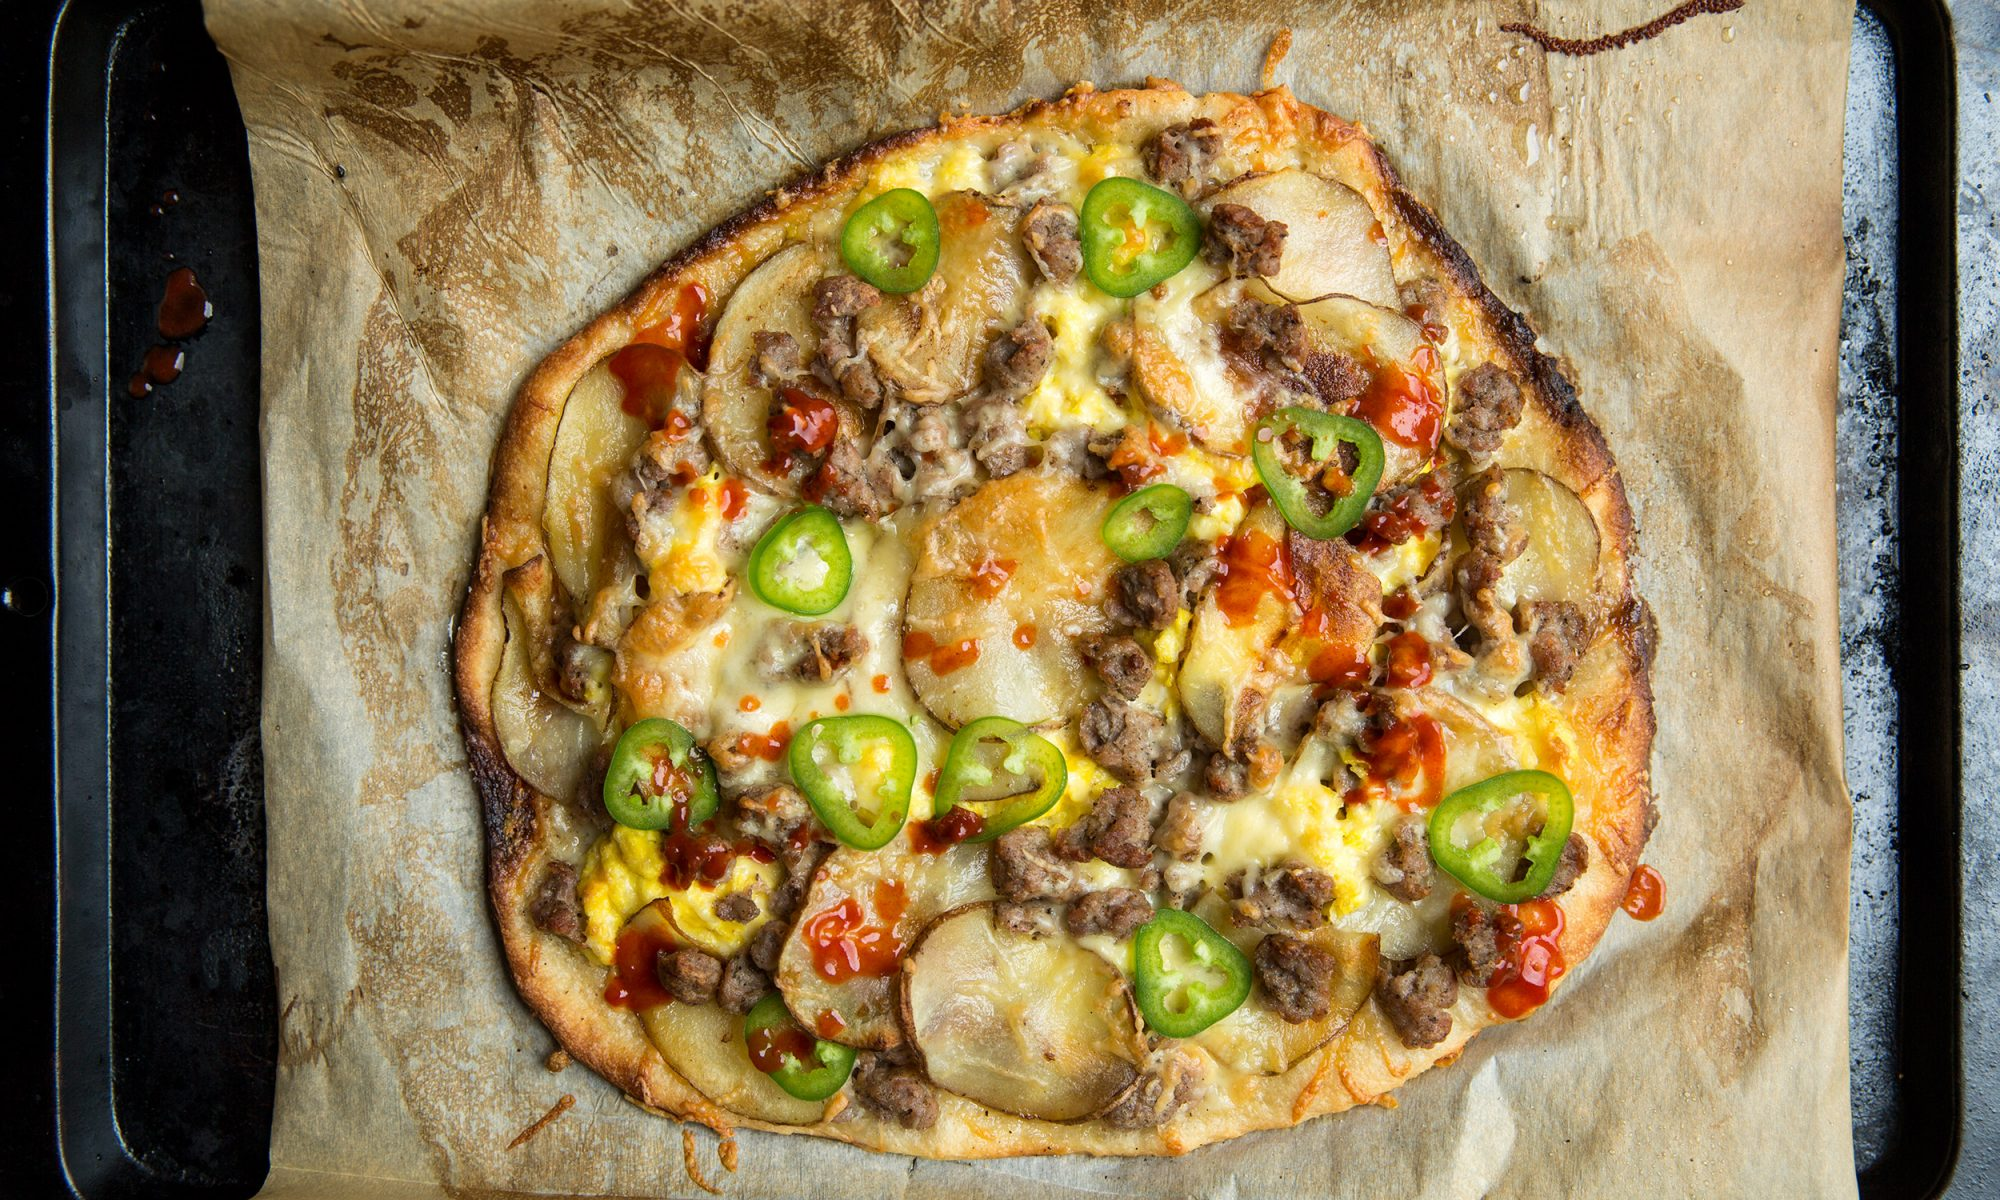 Eat Pizza in the Morning Like a Grownup